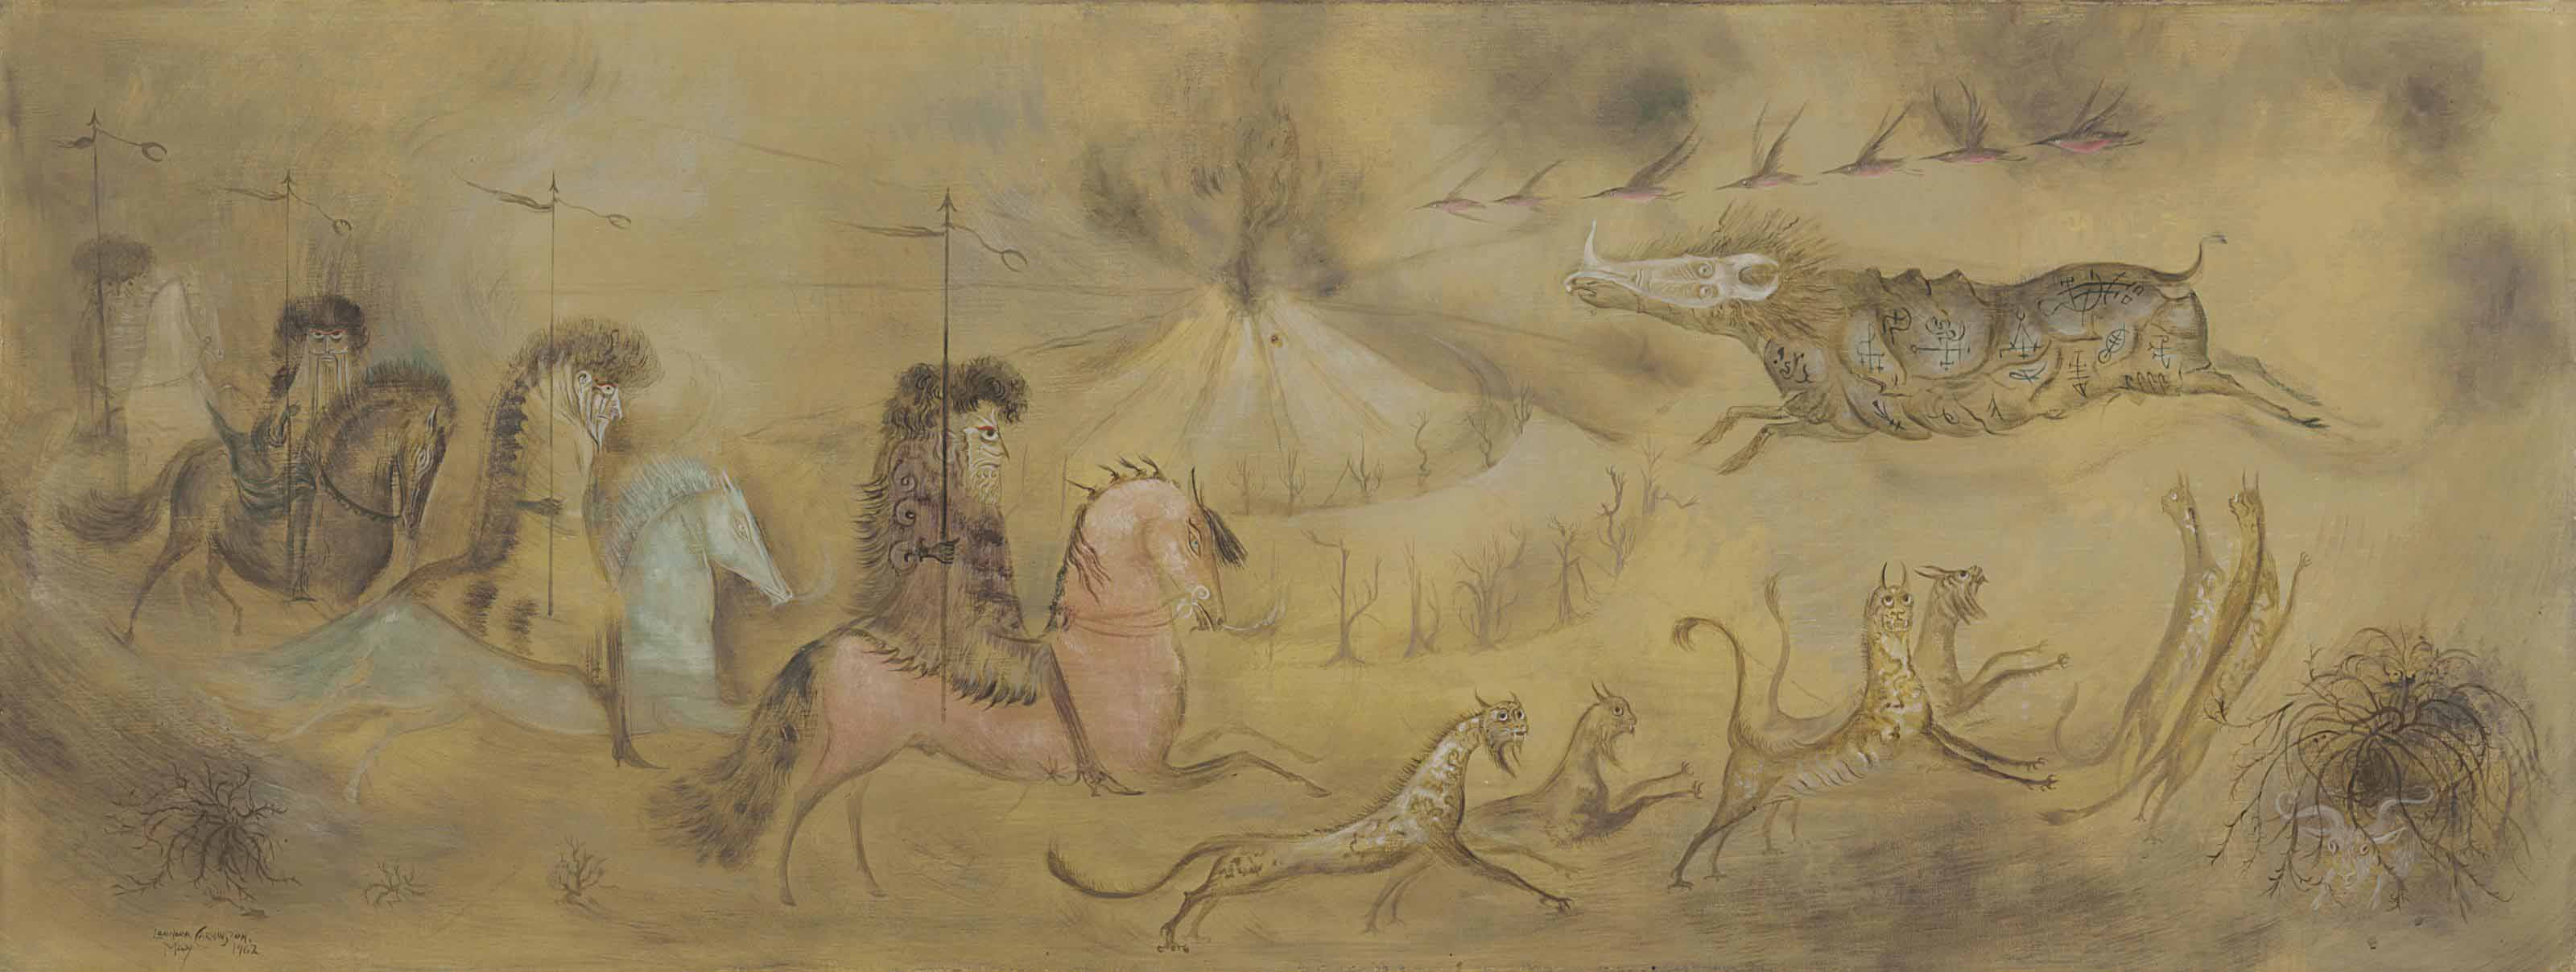 The Hunt (also known as La gran cacería)